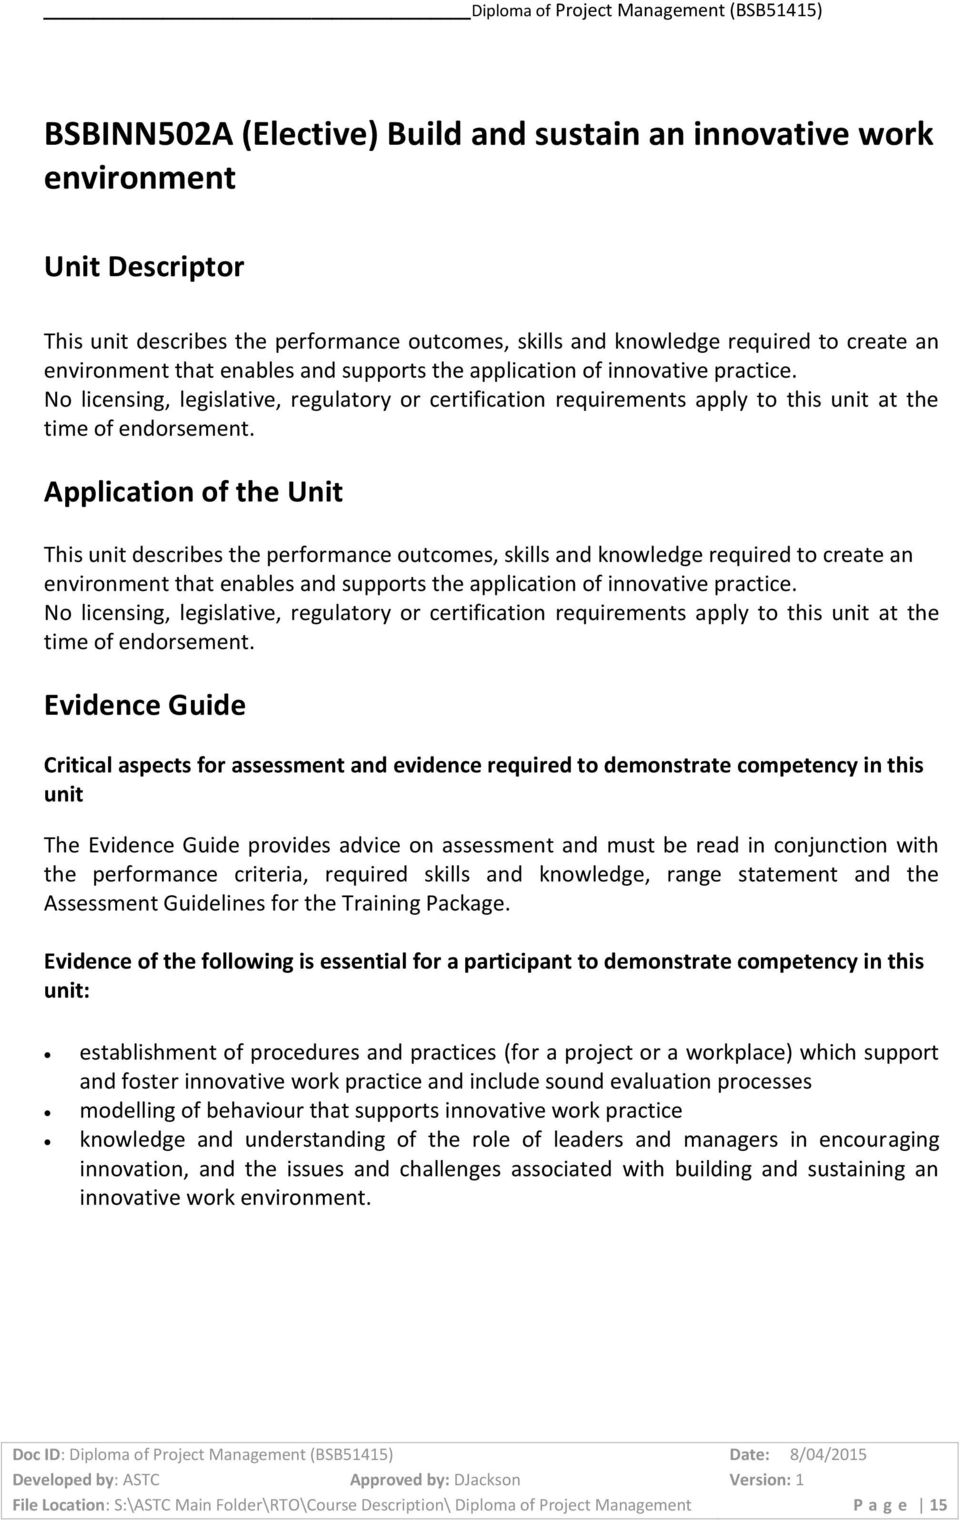 This unit describes the performance outcomes, skills and knowledge required to create an environment that enables and supports  Critical aspects for assessment and evidence required to demonstrate